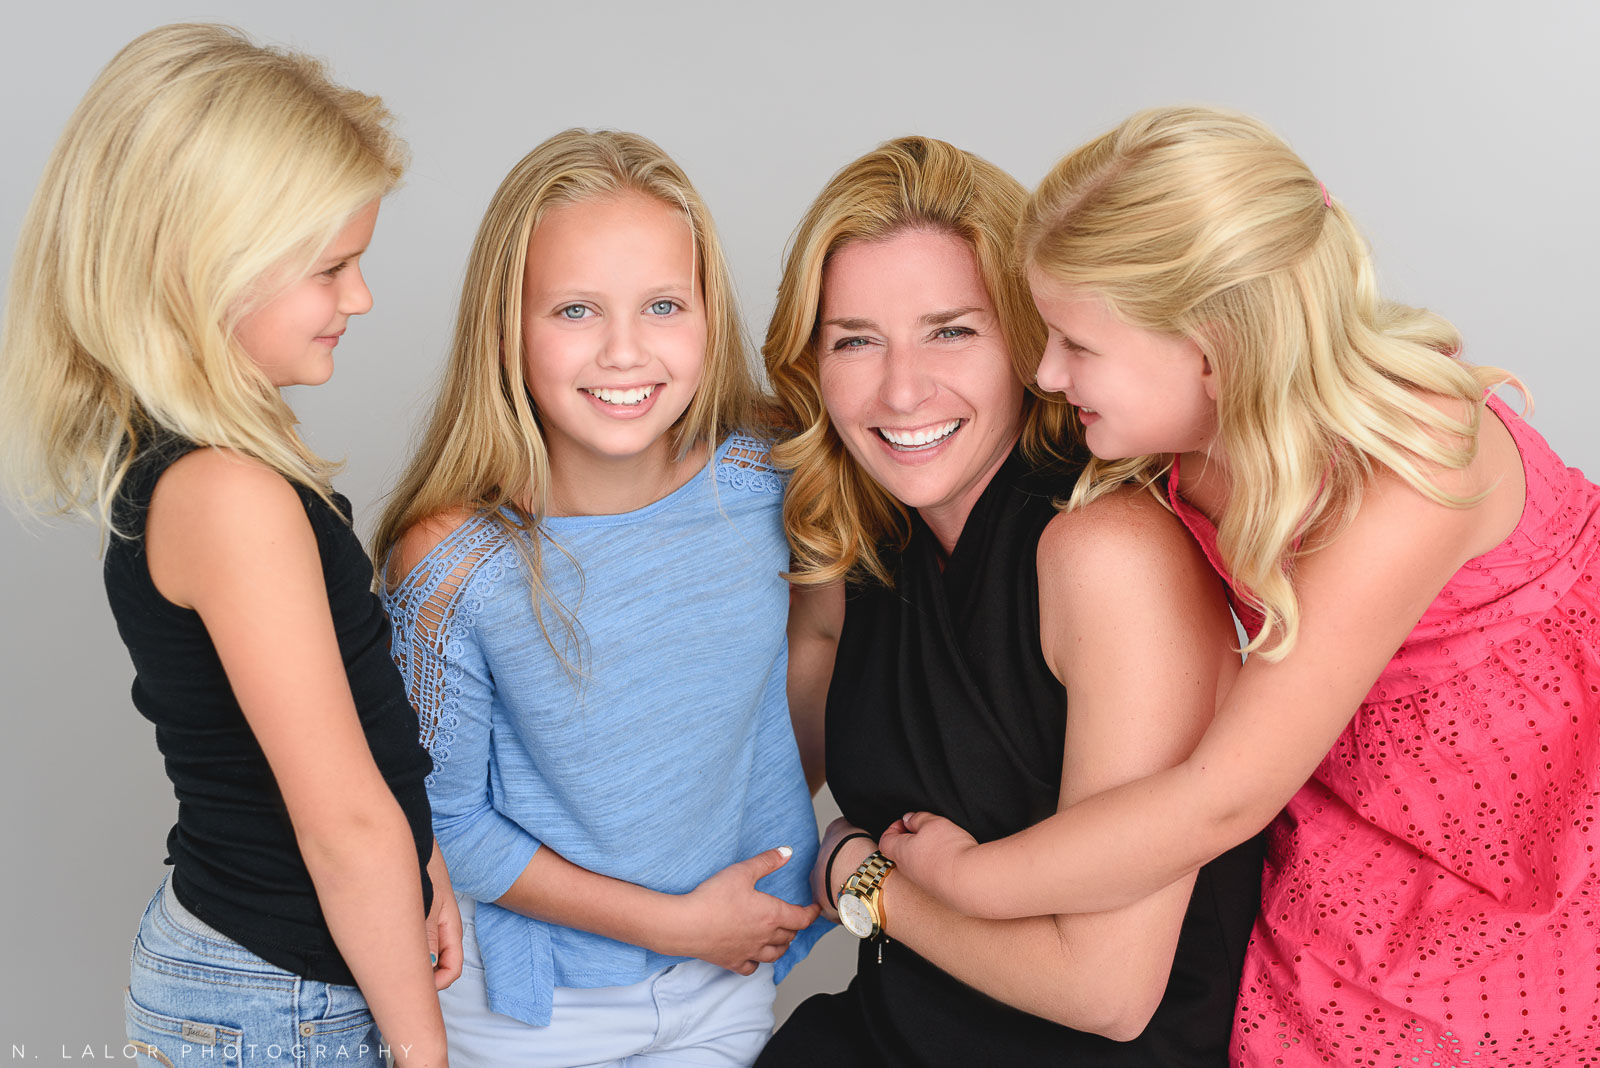 Mom with the girls. Studio family photo session with N. Lalor Photography in Greenwich, Connecticut.